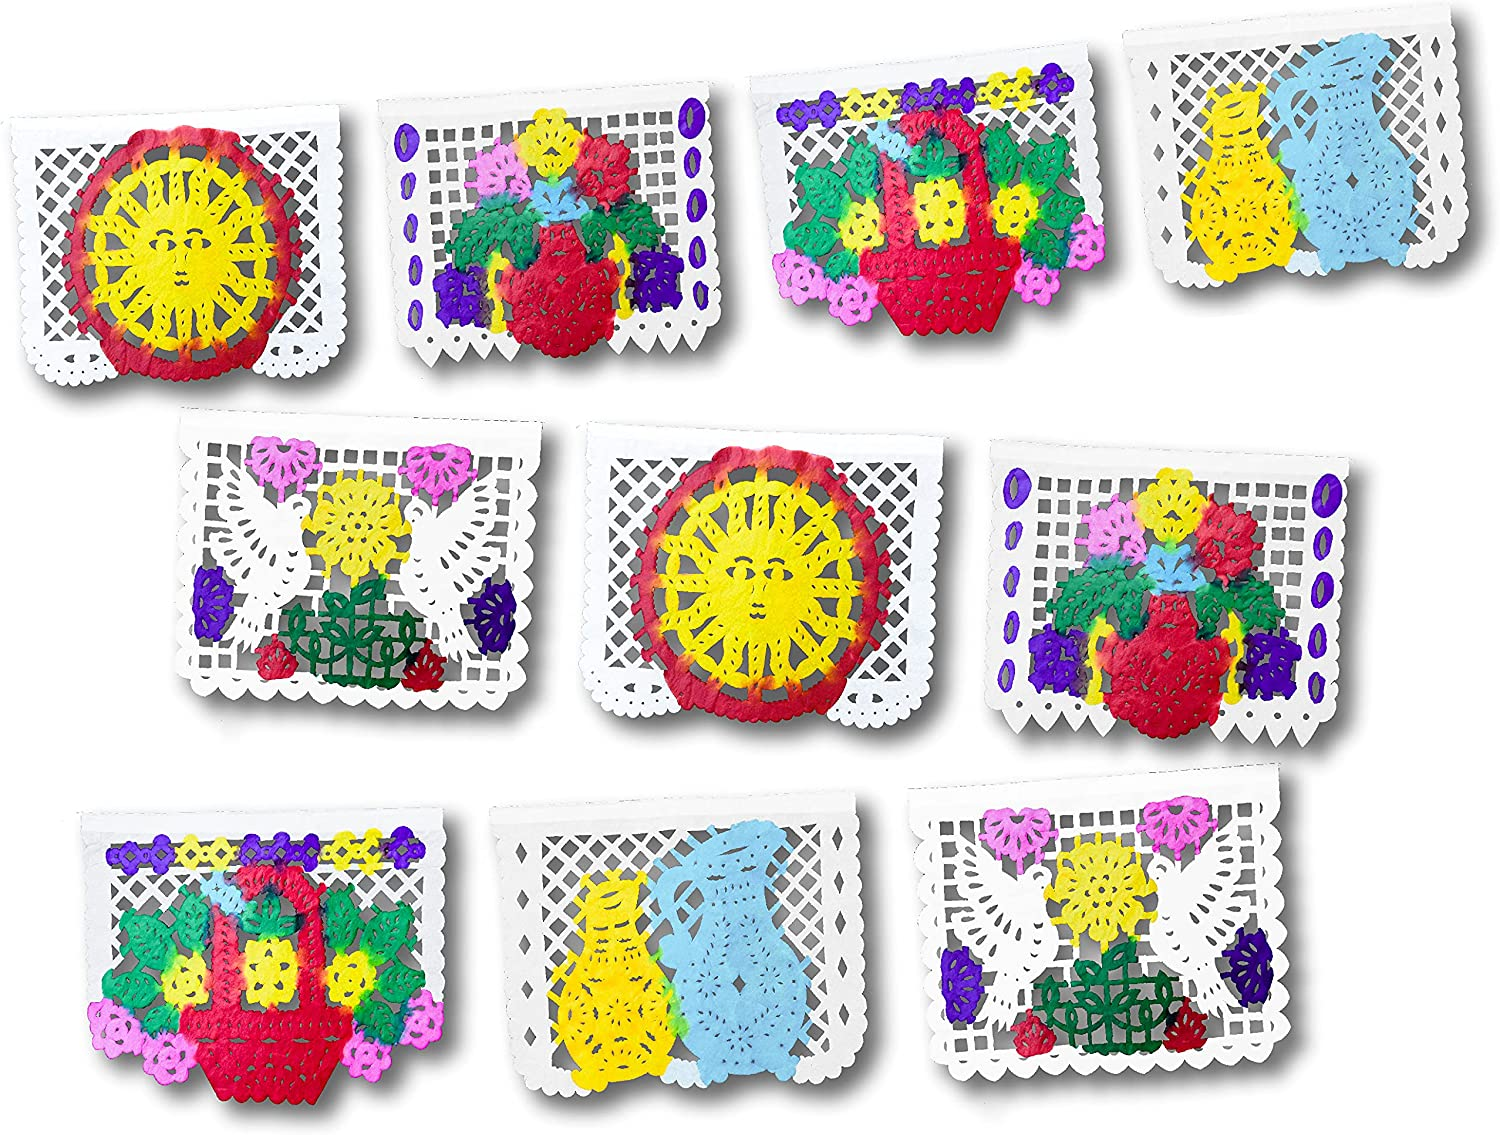 Fiesta Brands Papel Picado Mexicano Banner - Mexican Theme Tissue Paper Flags - Party Decorations for Cinco De Mayo, Dia De Los Muertos - Colorful Handpainted Banners for Birthday Decor - 16 Ft Long